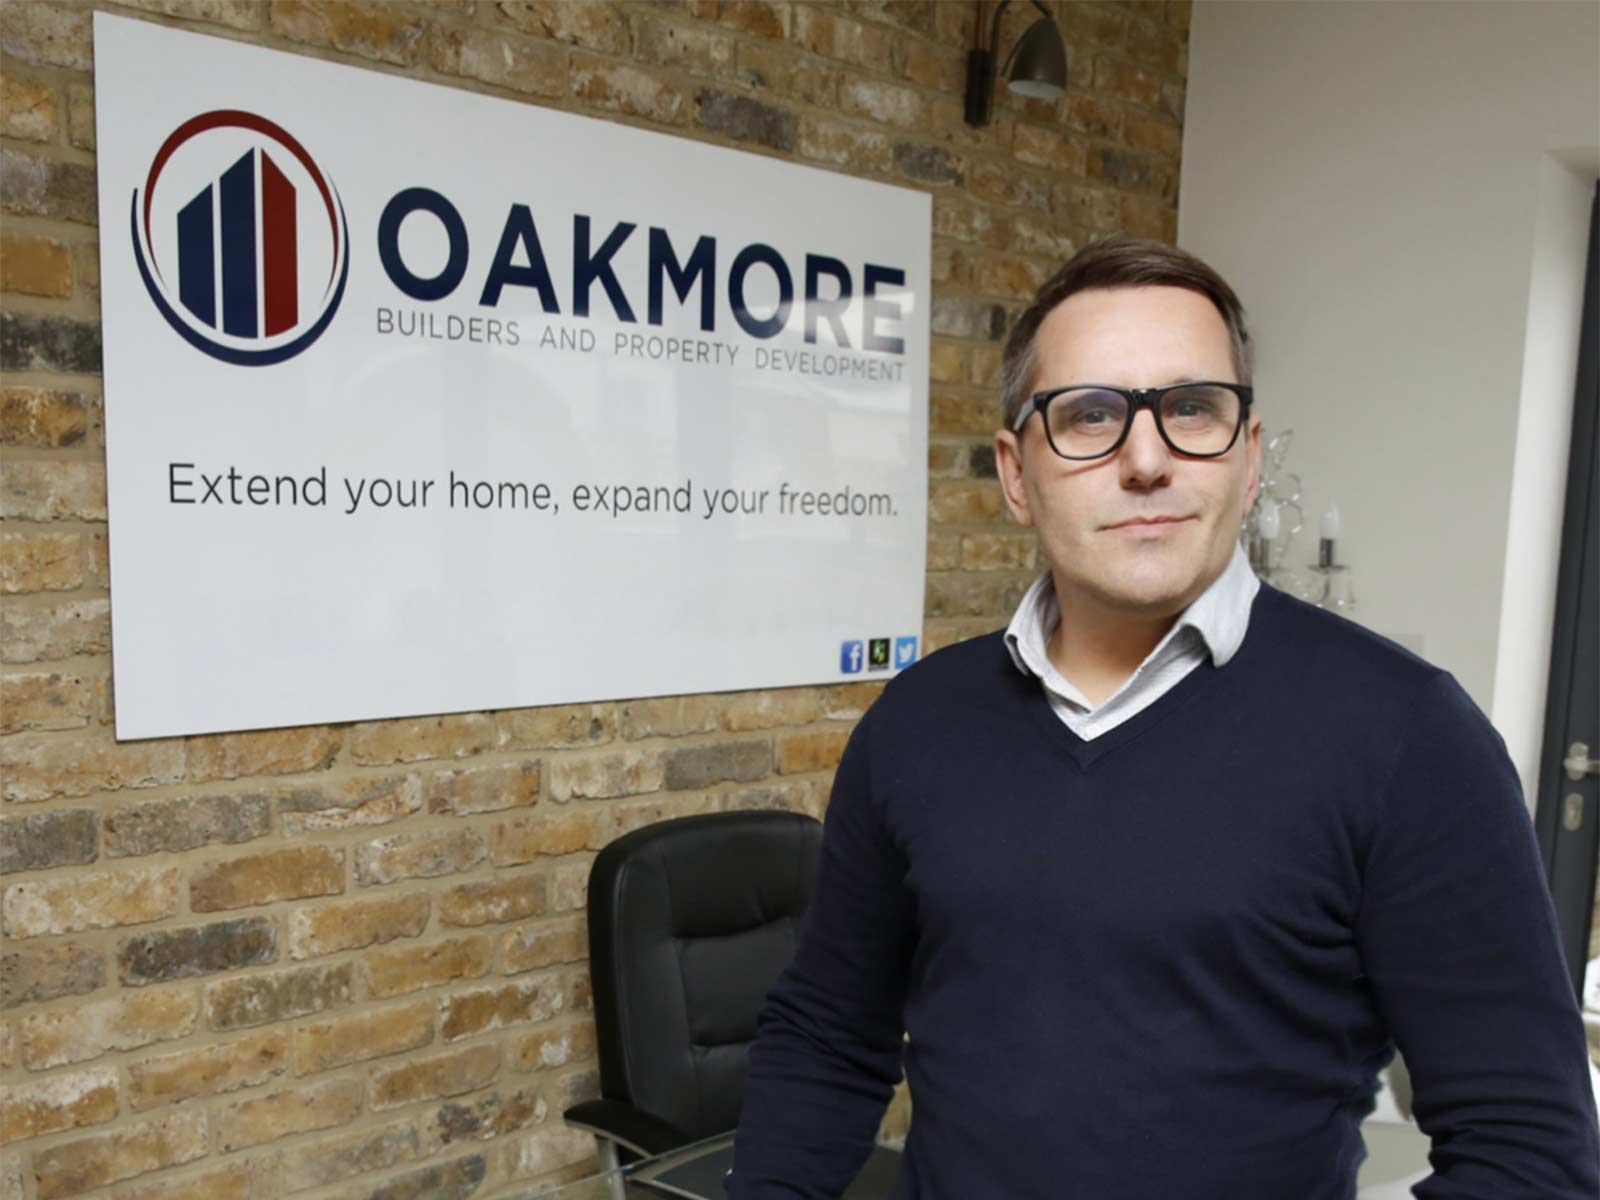 Oakmore Builders: lef school to £1m business for Chislehurst man